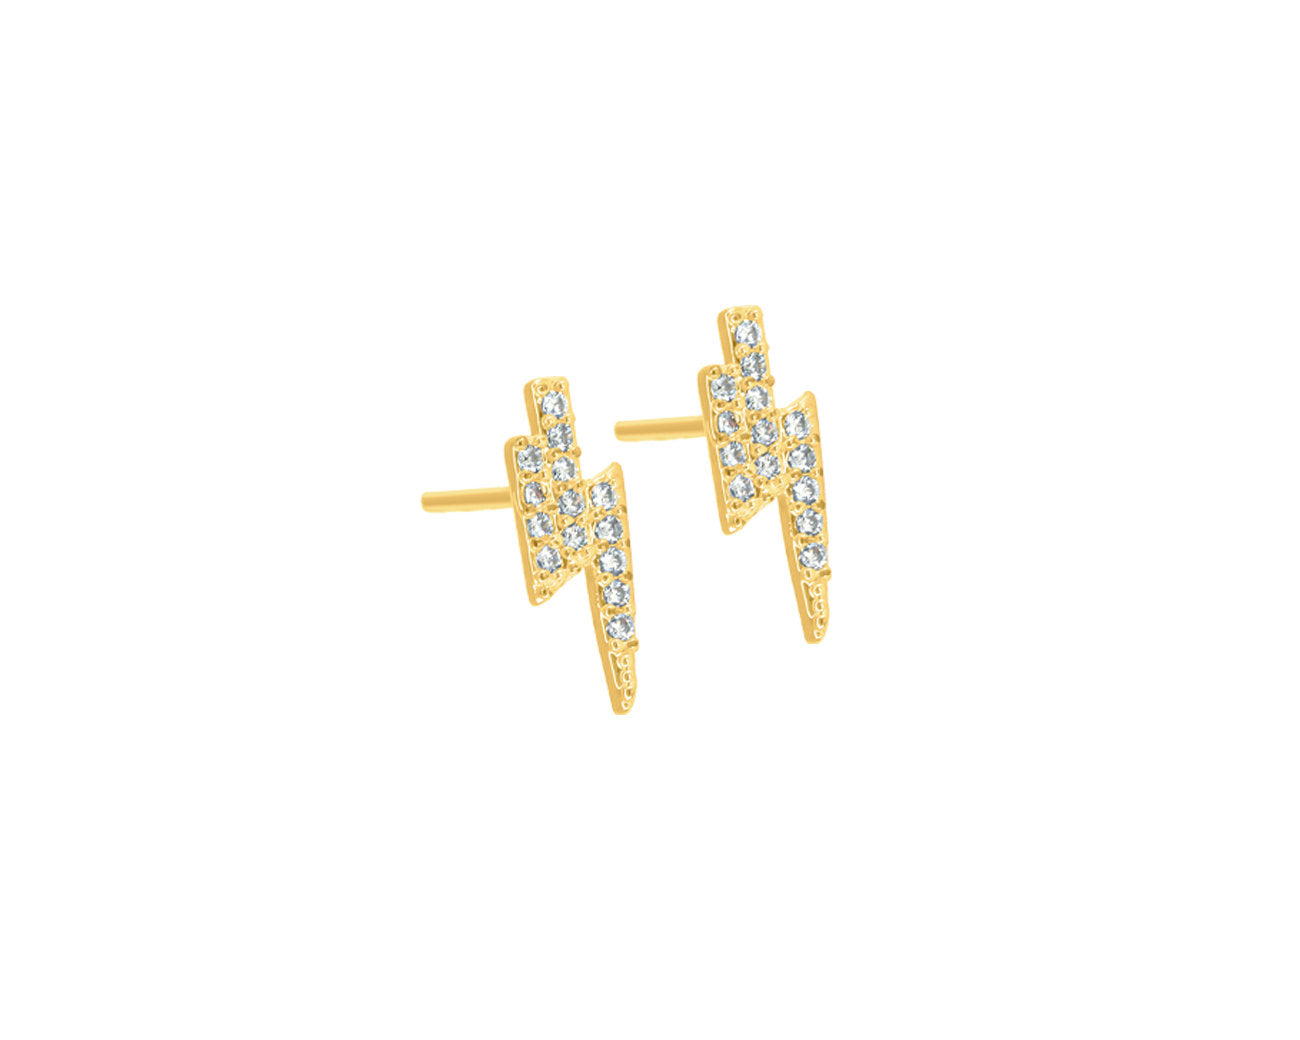 FAX Jewelry | 14k Gold Plated Micro Lightning Bolt Earrings